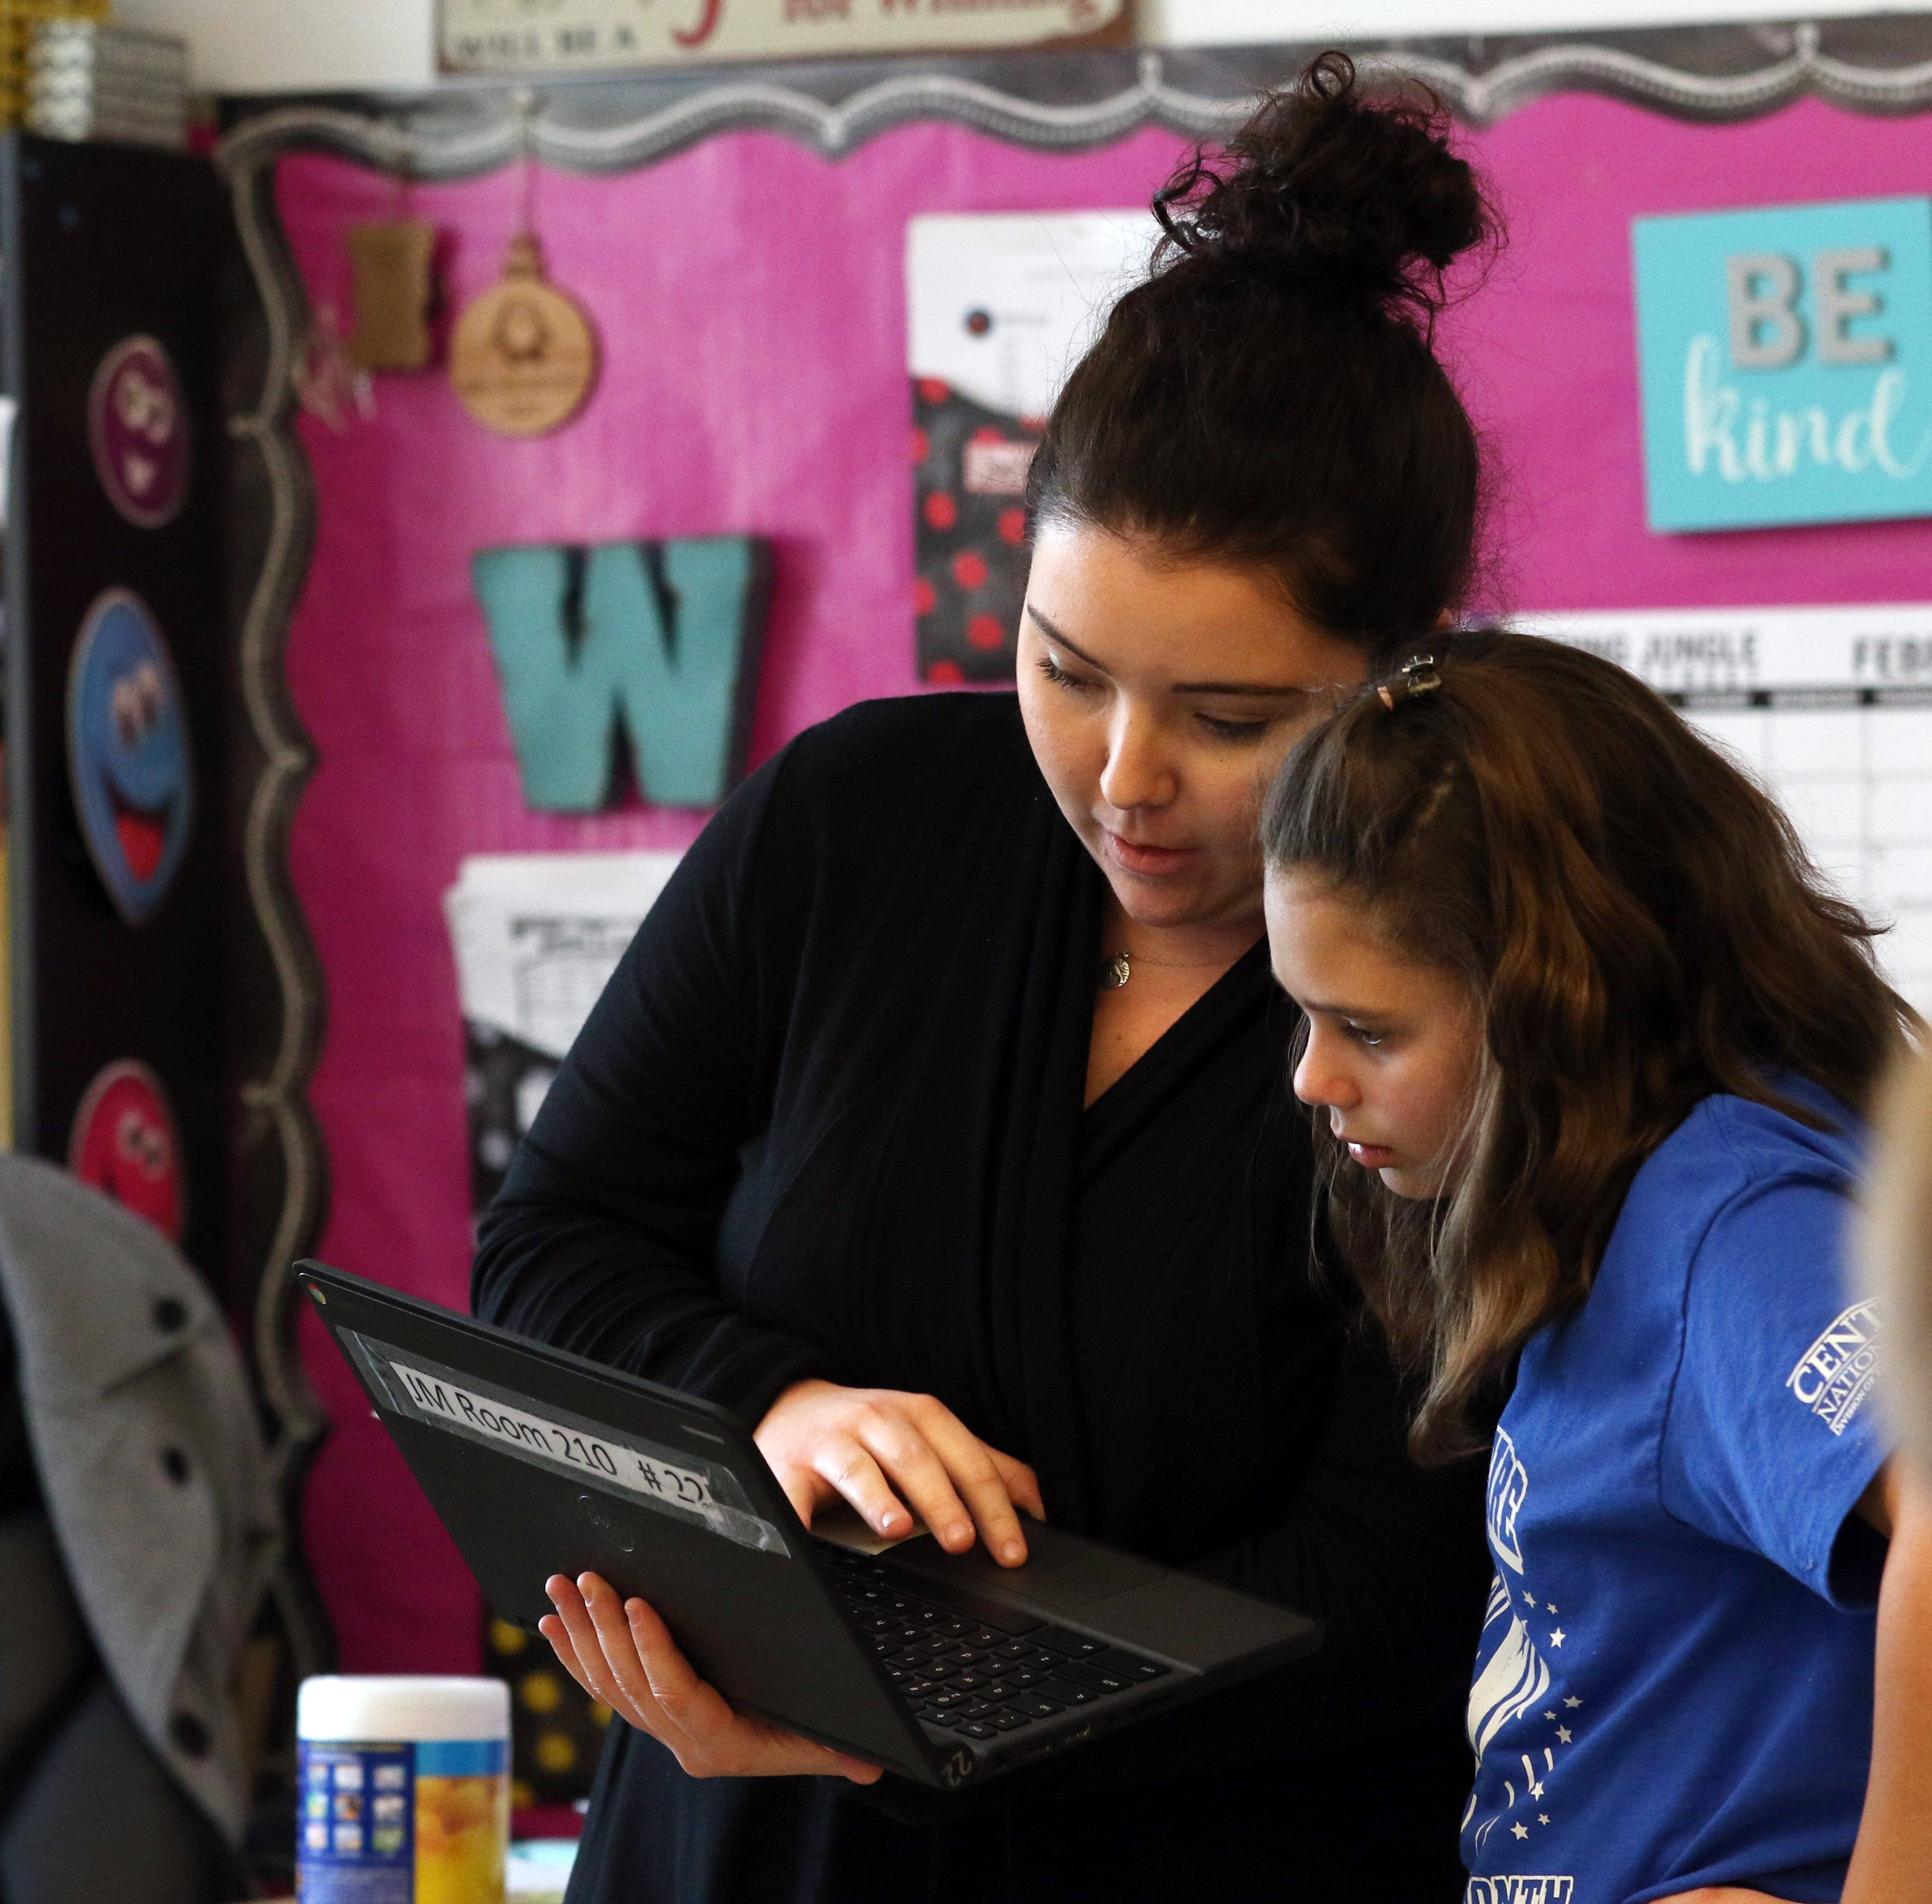 Want to be a substitute teacher? Local jobs are plentiful